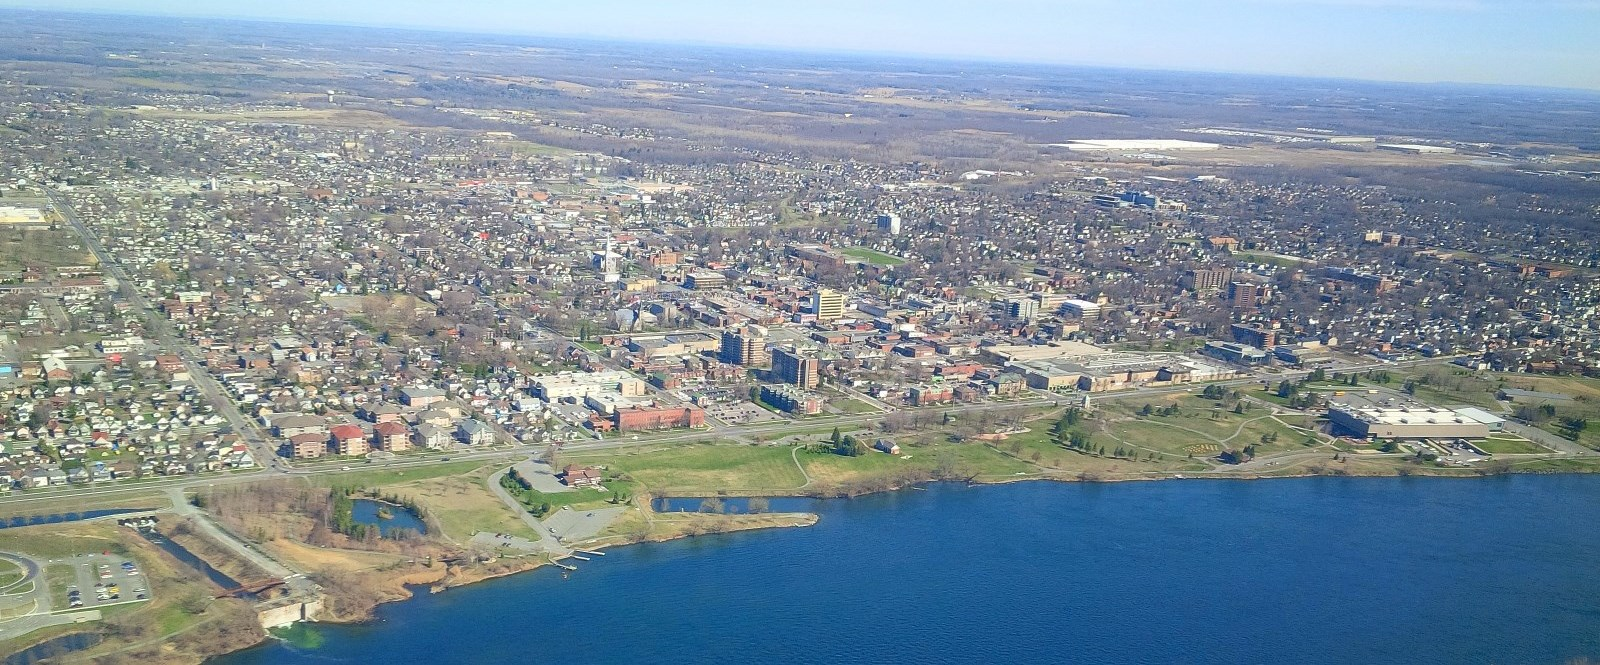 Aerial view of cornwall from above Saint Lawrence River